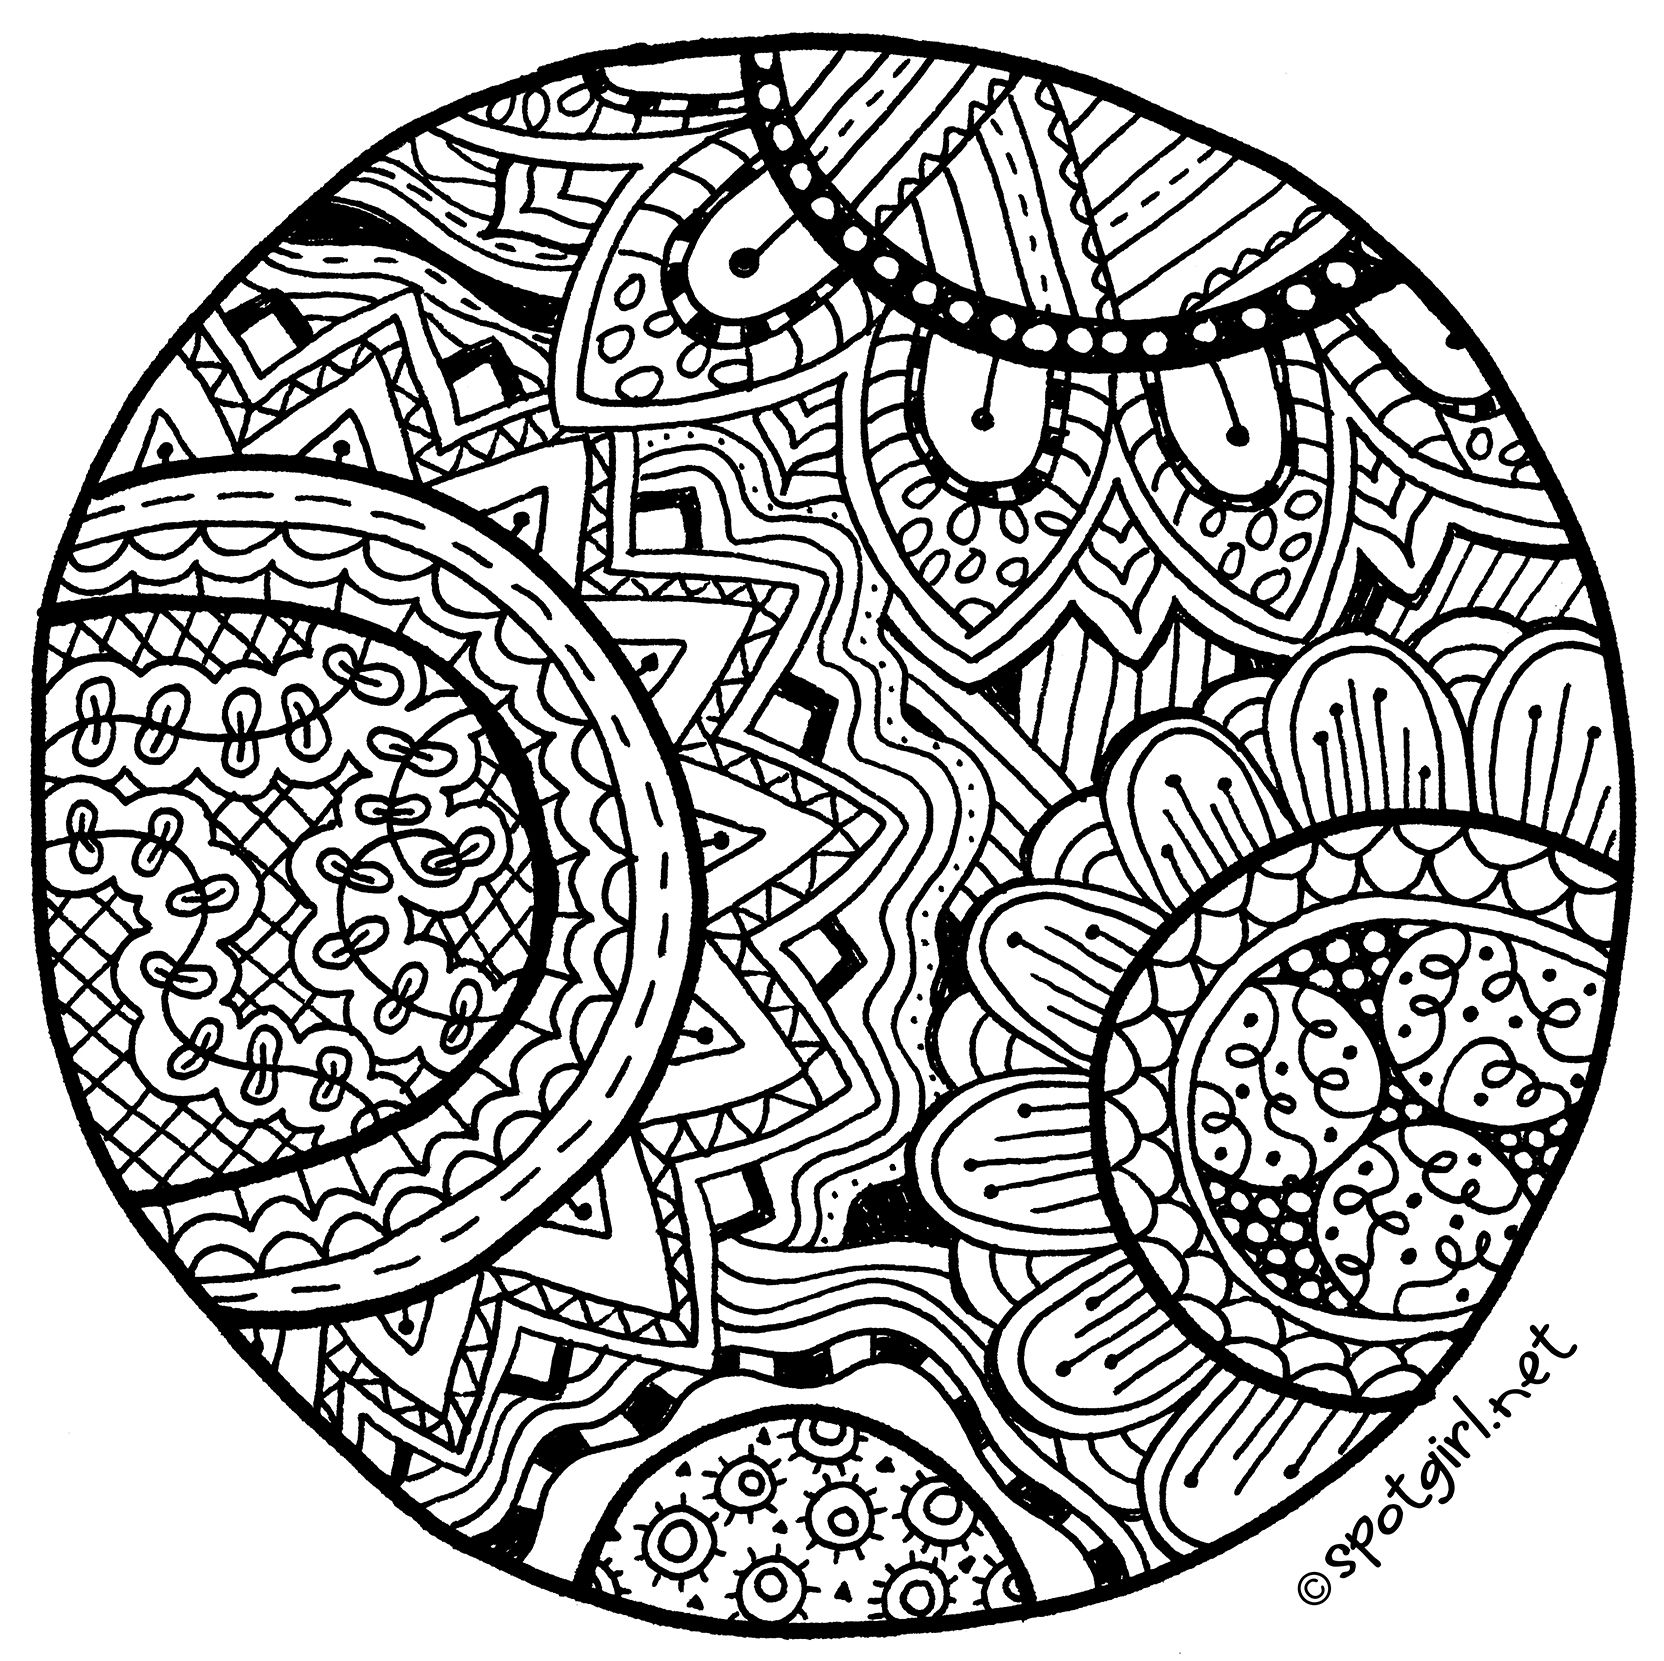 printable designs to color free printable geometric coloring pages for kids color designs printable to